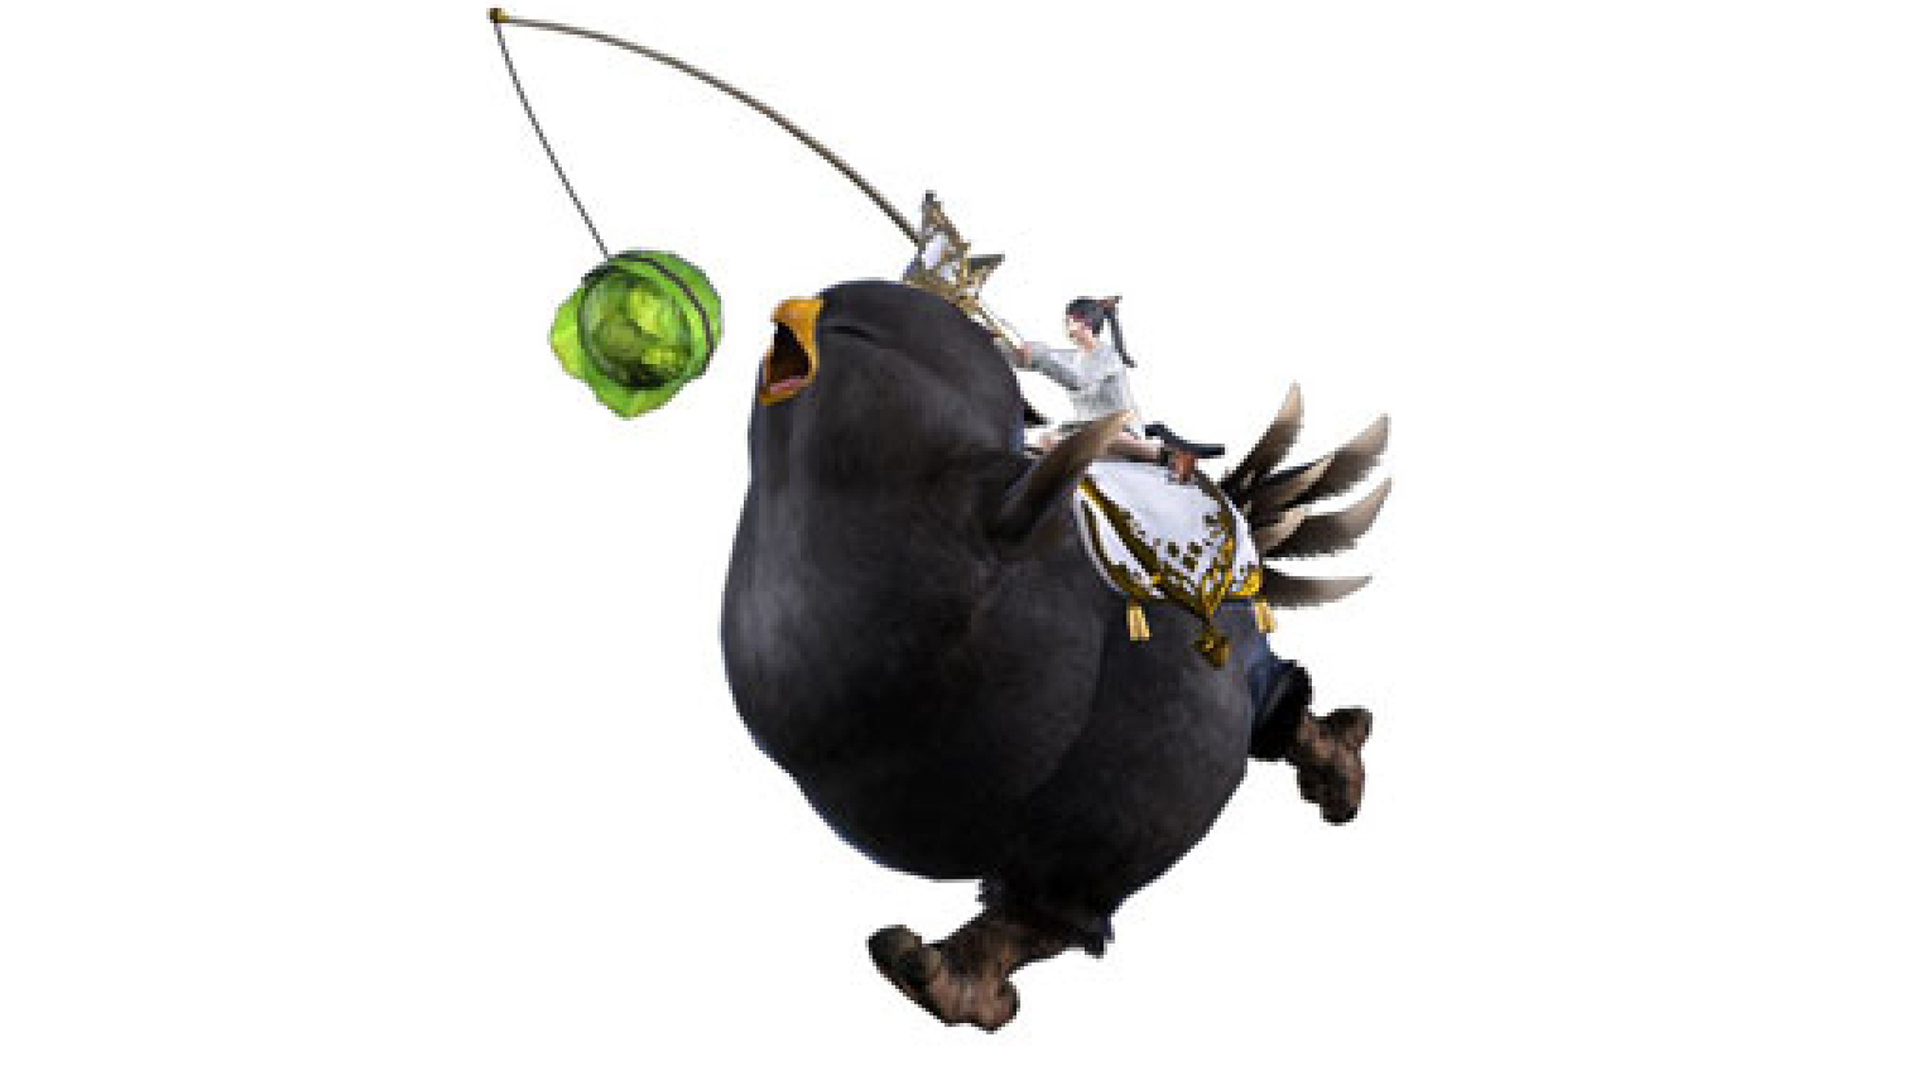 Final Fantasy XIV's Fat Black Chocobo is available again – through Twitch subs